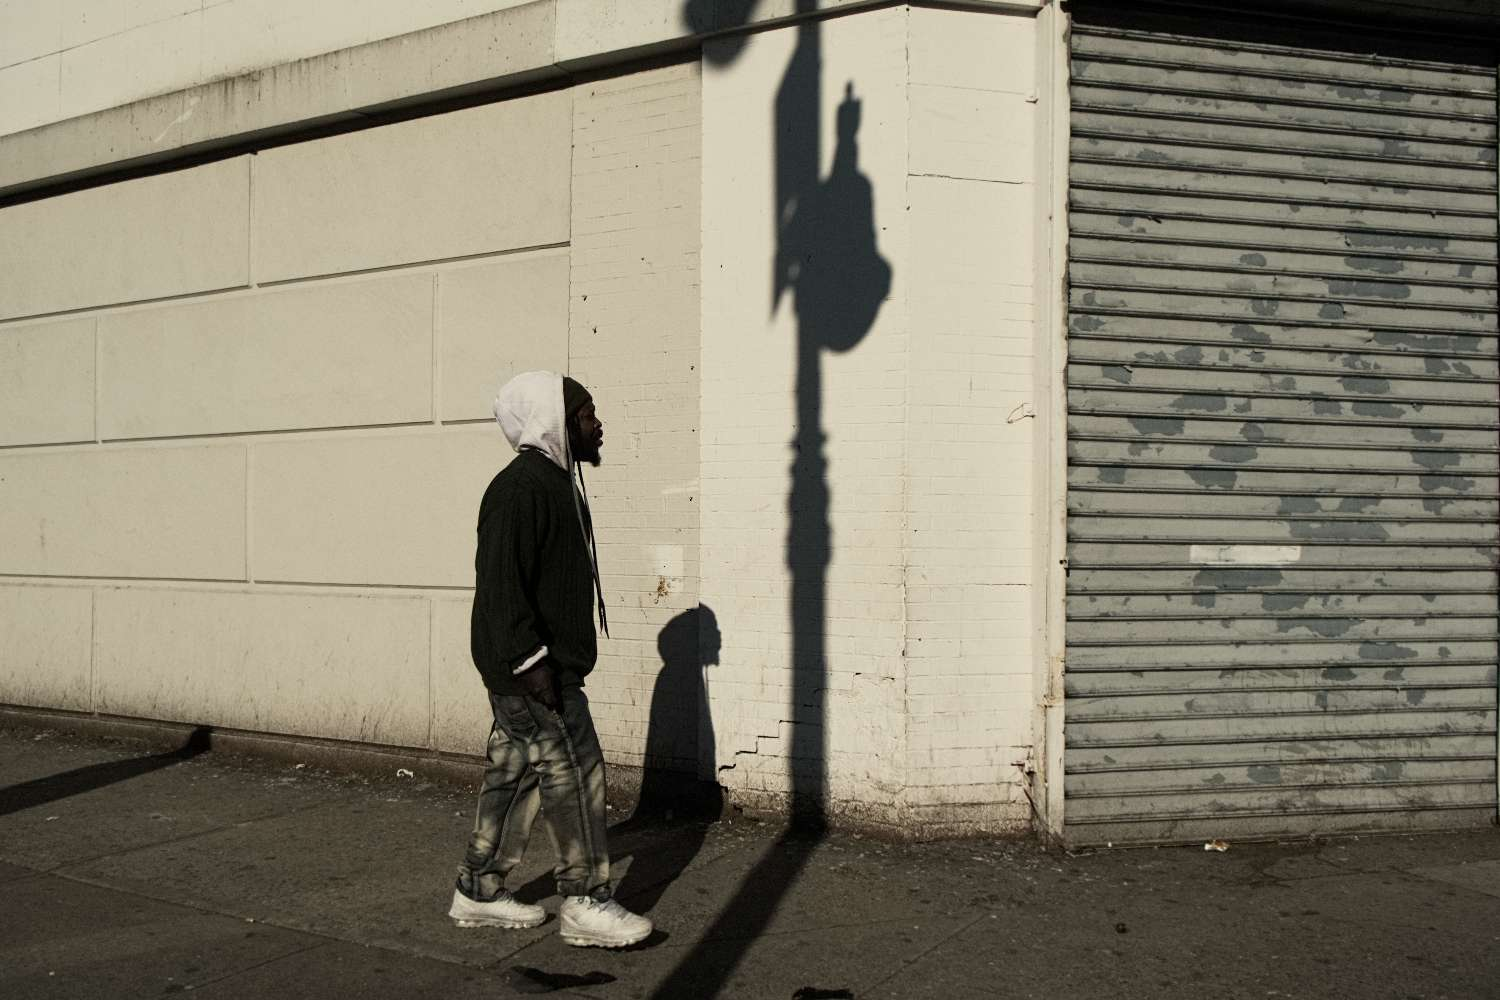 Man with Shadows